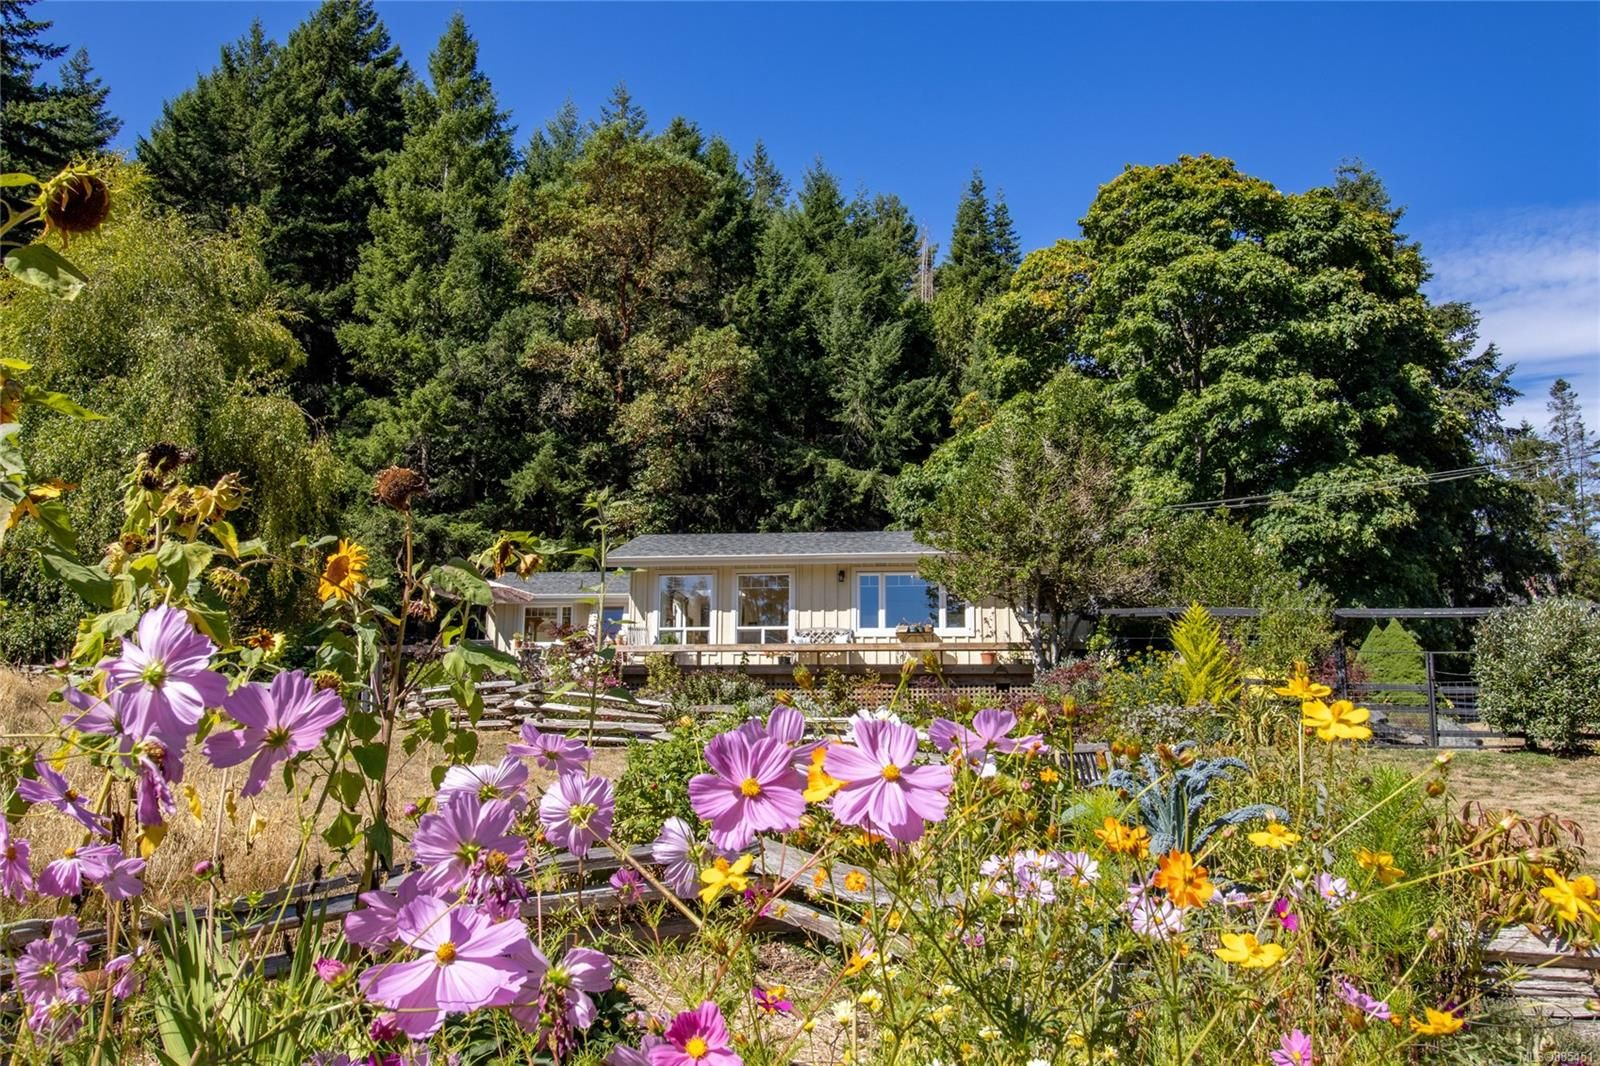 Main Photo: 4205 Armadale Rd in : GI Pender Island House for sale (Gulf Islands)  : MLS®# 885451